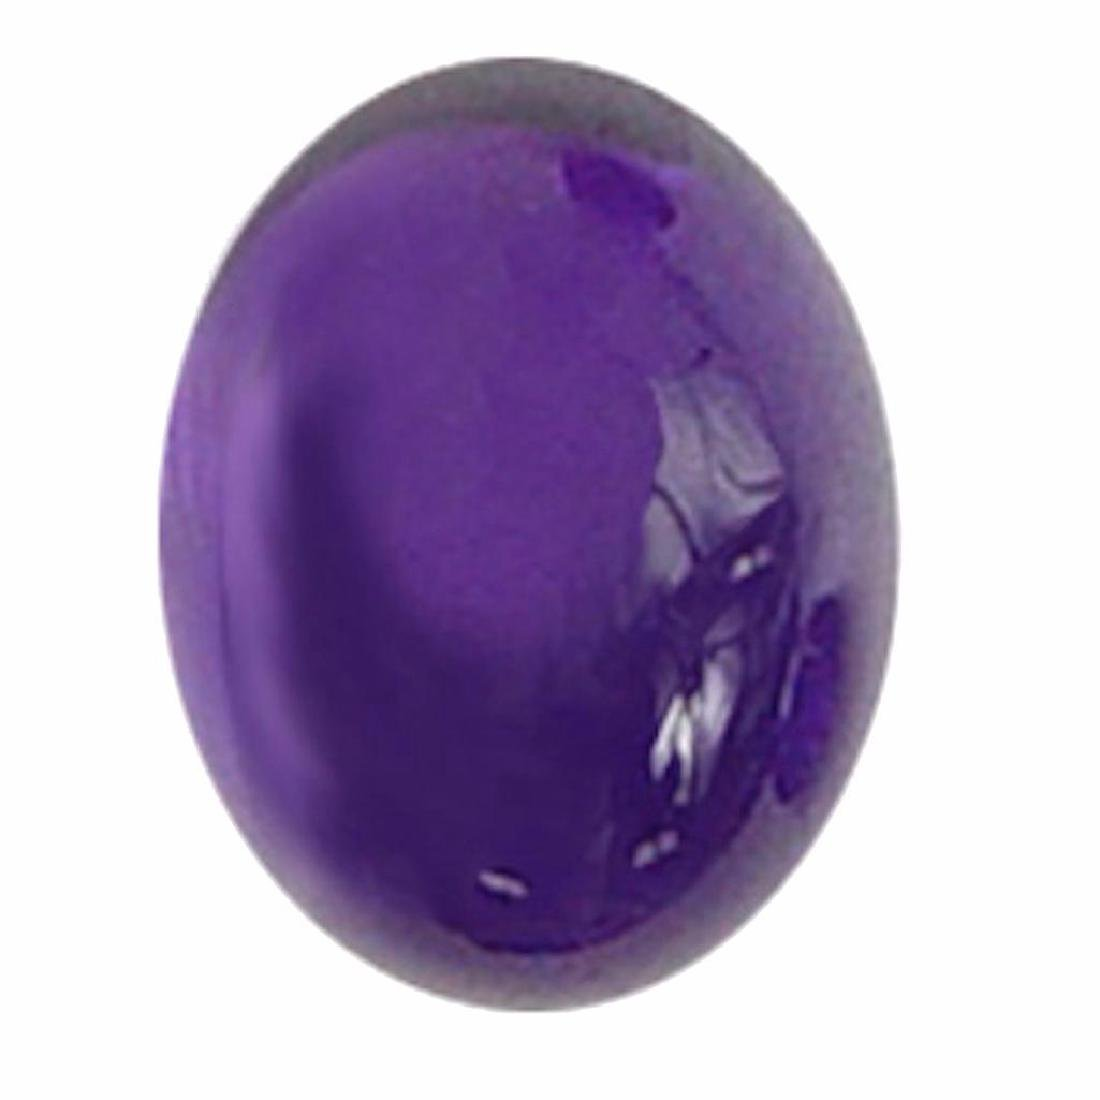 Nearly 3 Ct. fabulous Natural African Amethyst Deep